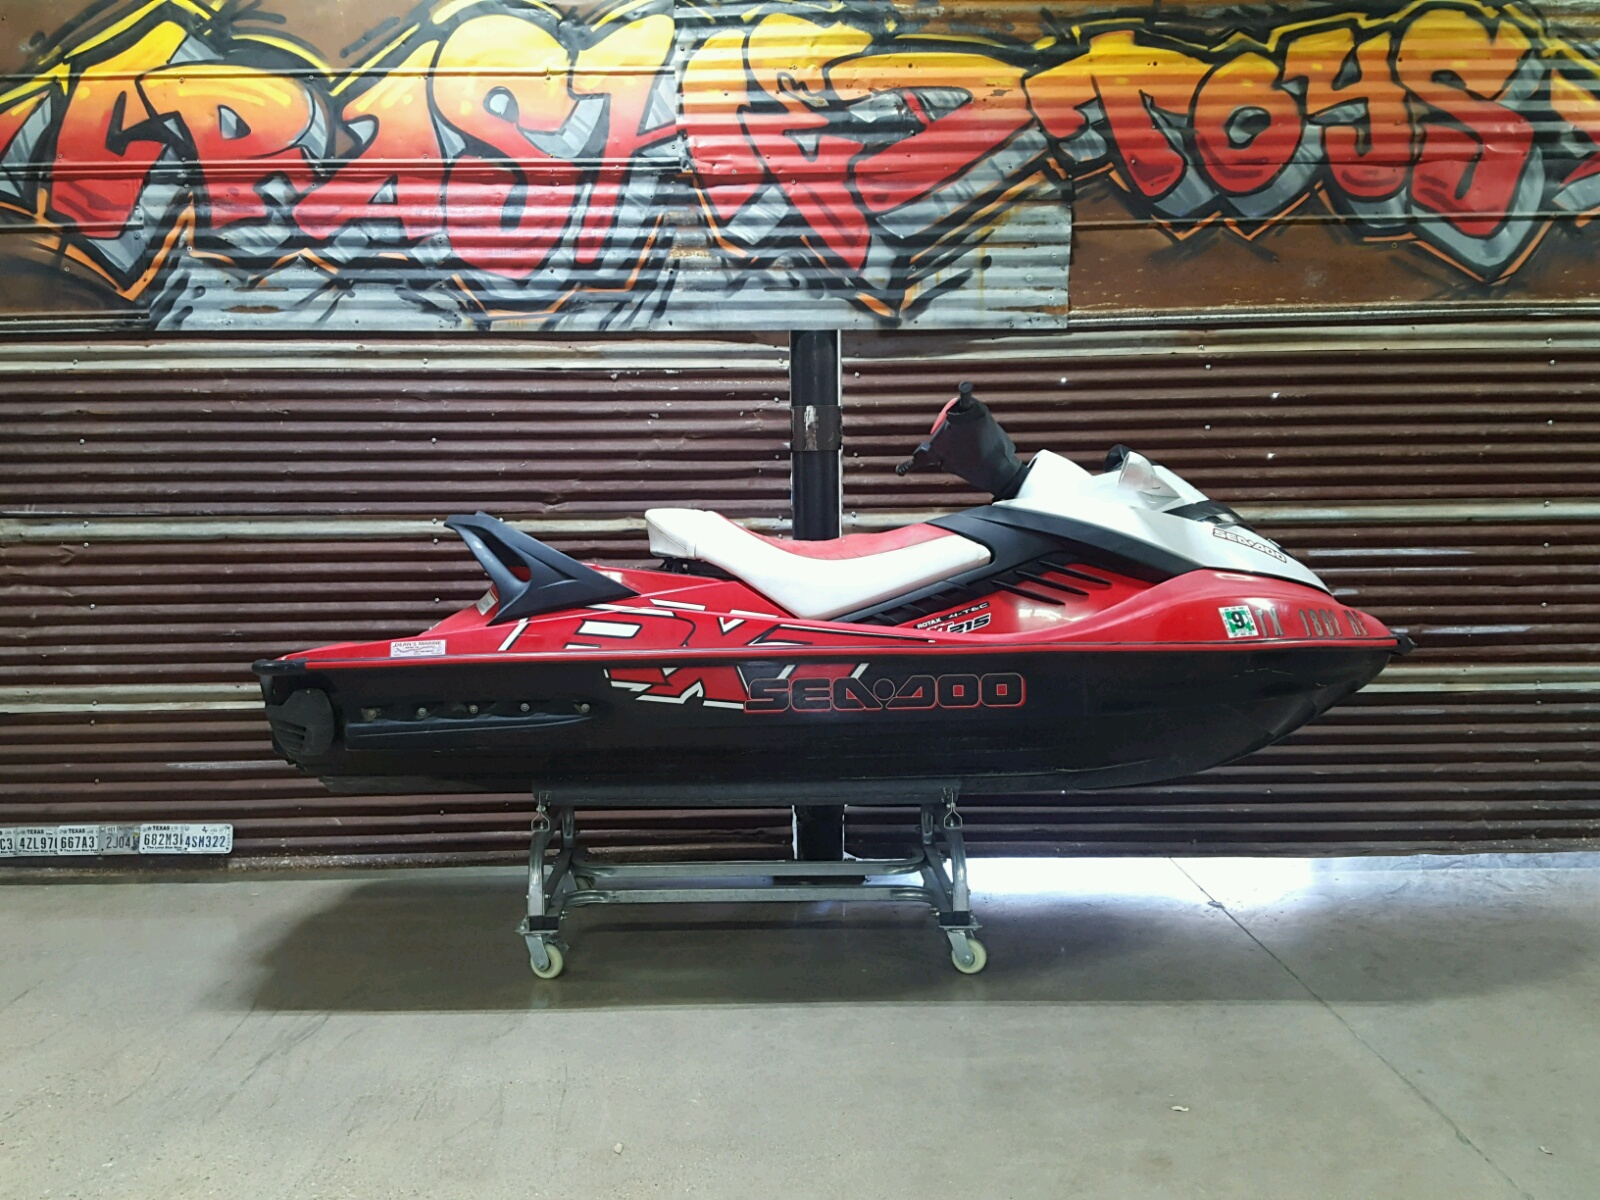 Salvage 2008 Seadoo RXT 215 for sale